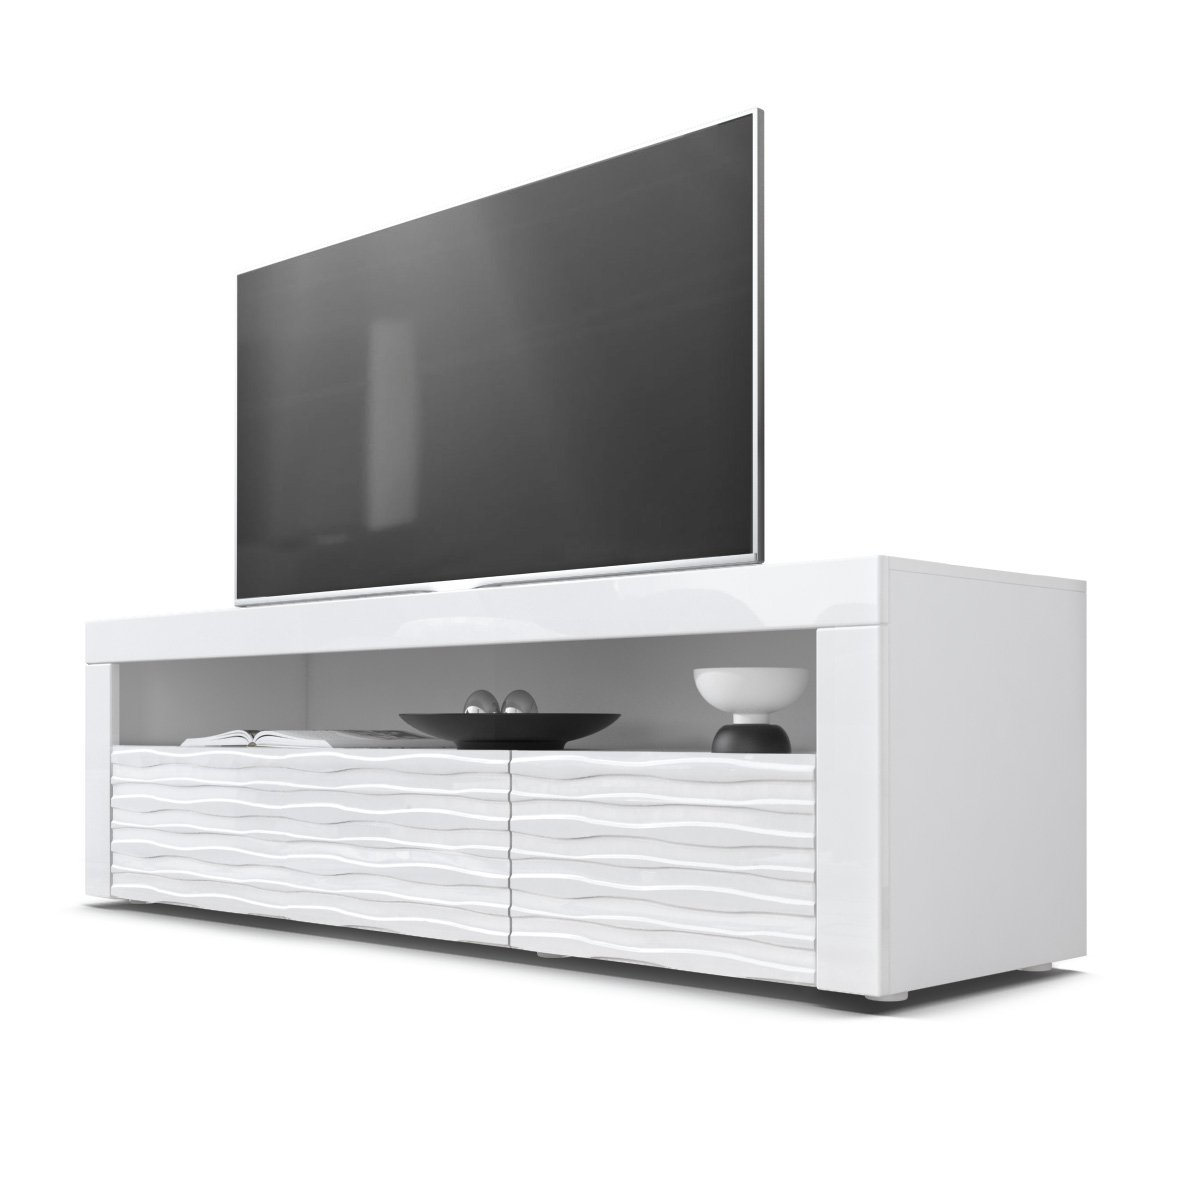 Front White High Gloss Harmony With 3d Structure TV Unit Vladon TV Stand Unit Valencia, Carcass in White matt Front in White High Gloss Element with a milled 3D Structure and frames in White High Gloss